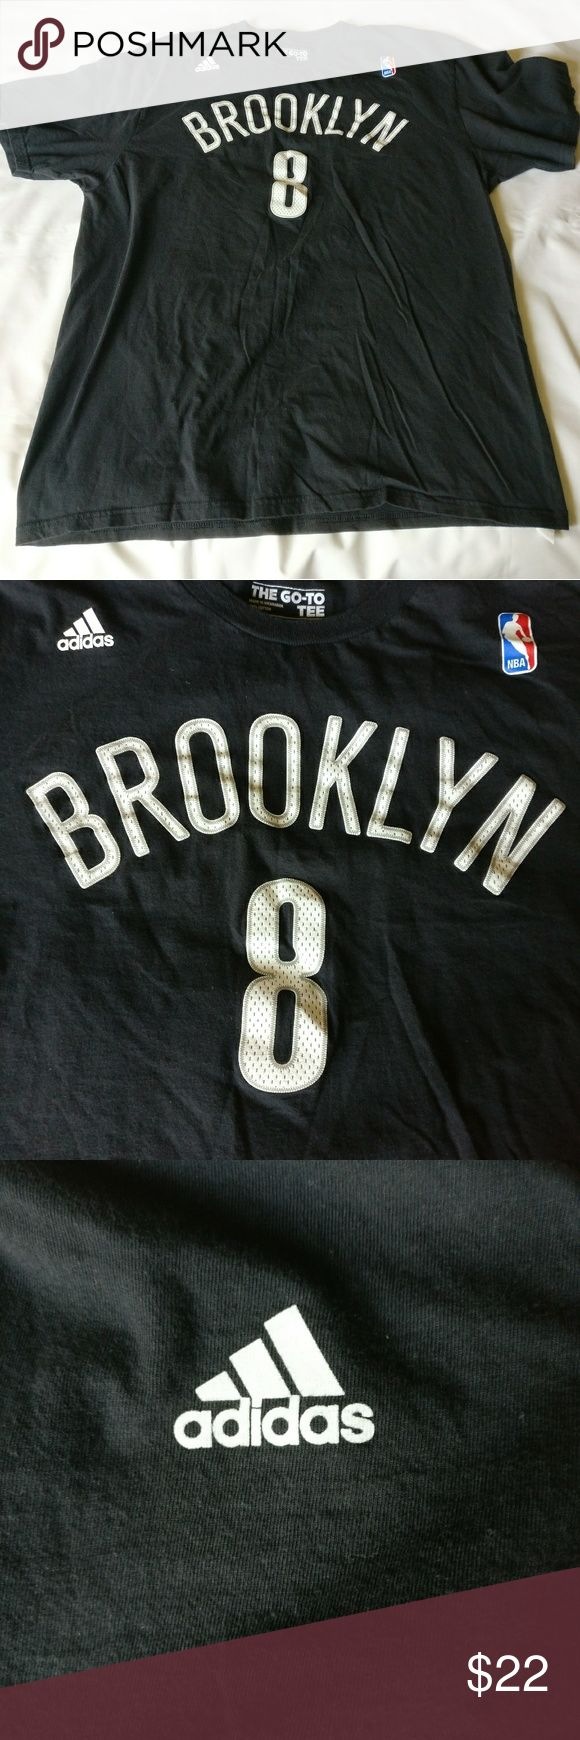 Nba Official Brooklyn Nets Deron Williams Shirt Gently used before hand. No tears or holes.  TAG SIZE: XL  Length:  21.5 inches armpit to armpit & 29 inches shoulder to base  Color - Black  Fabric - 100% Cotton adidas Shirts Tees - Short Sleeve